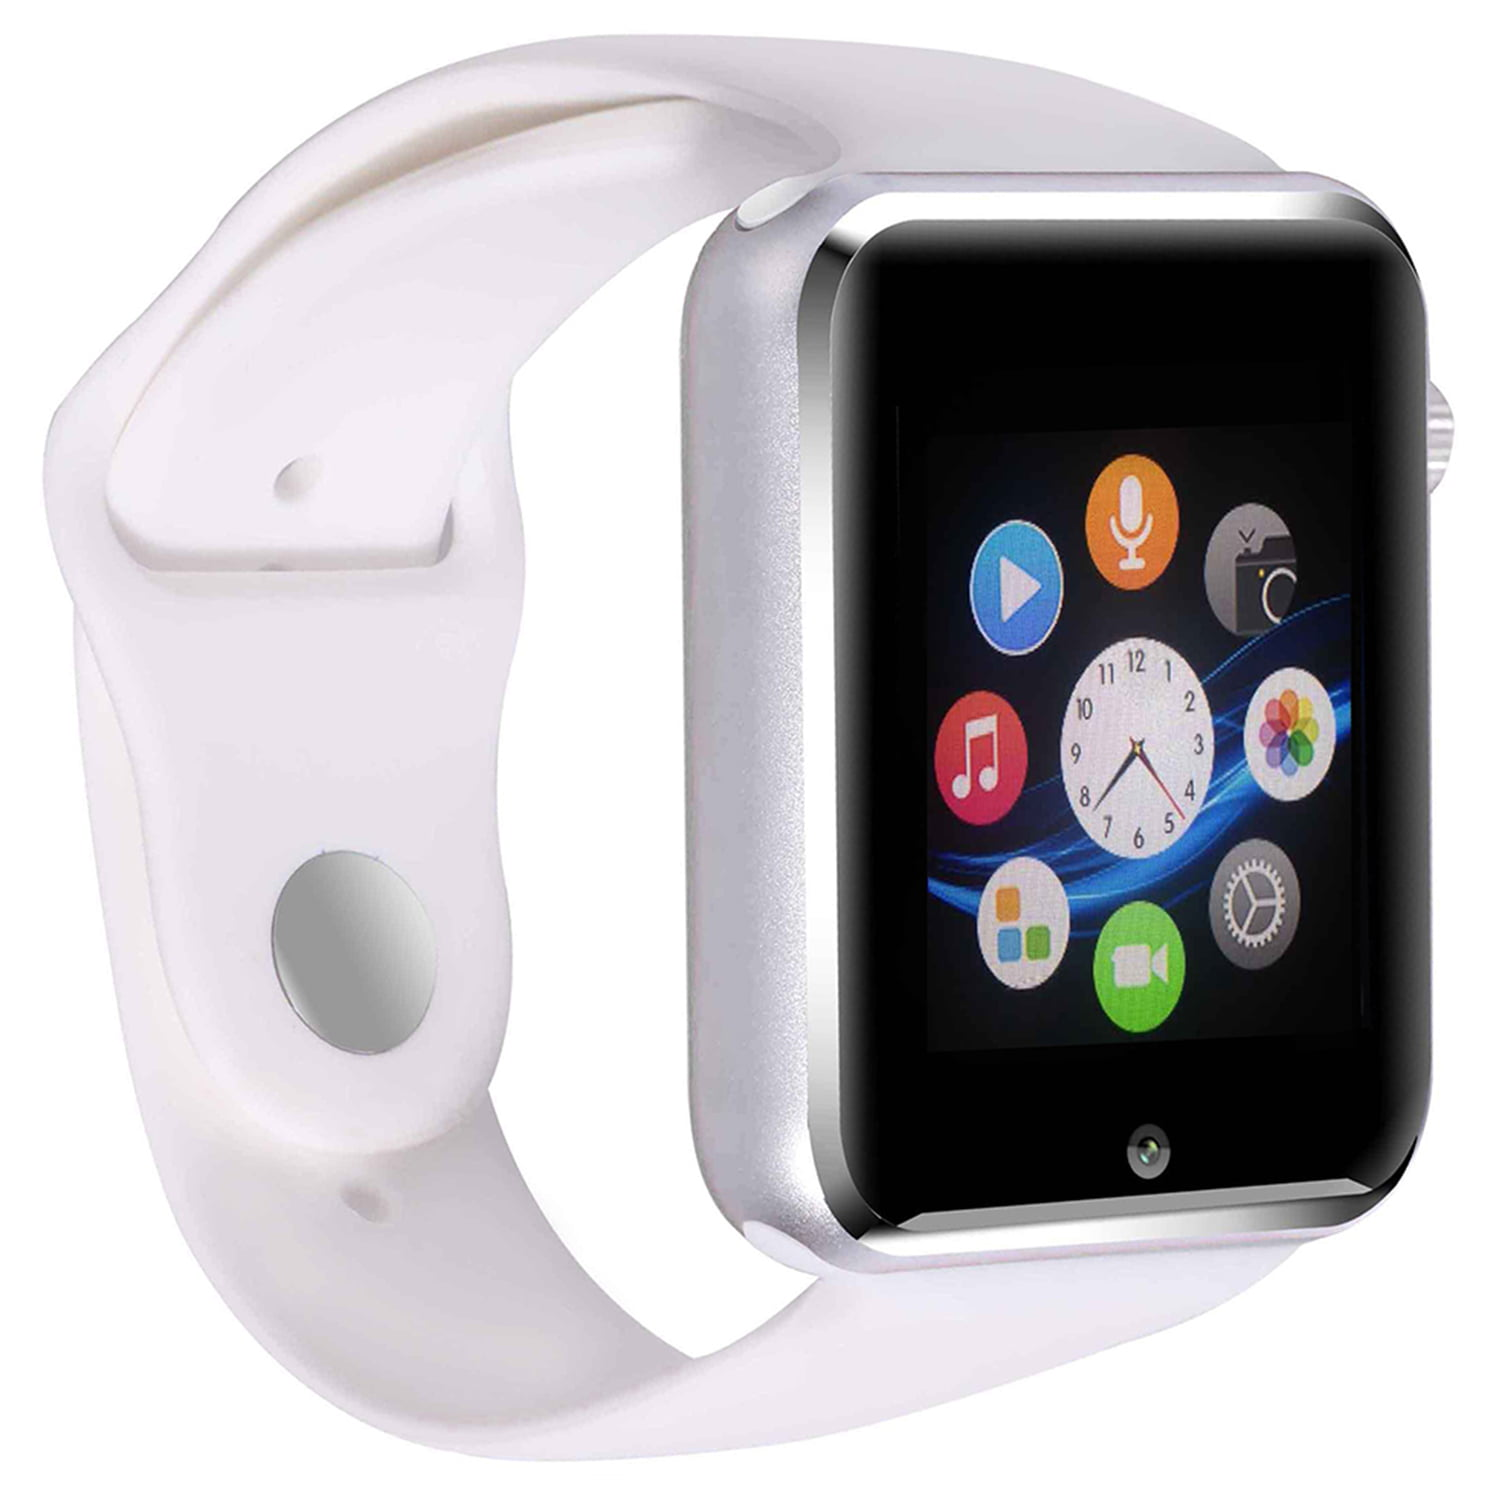 iphone date magnetic watch new release need wont model wristband and specs watches apple phone i